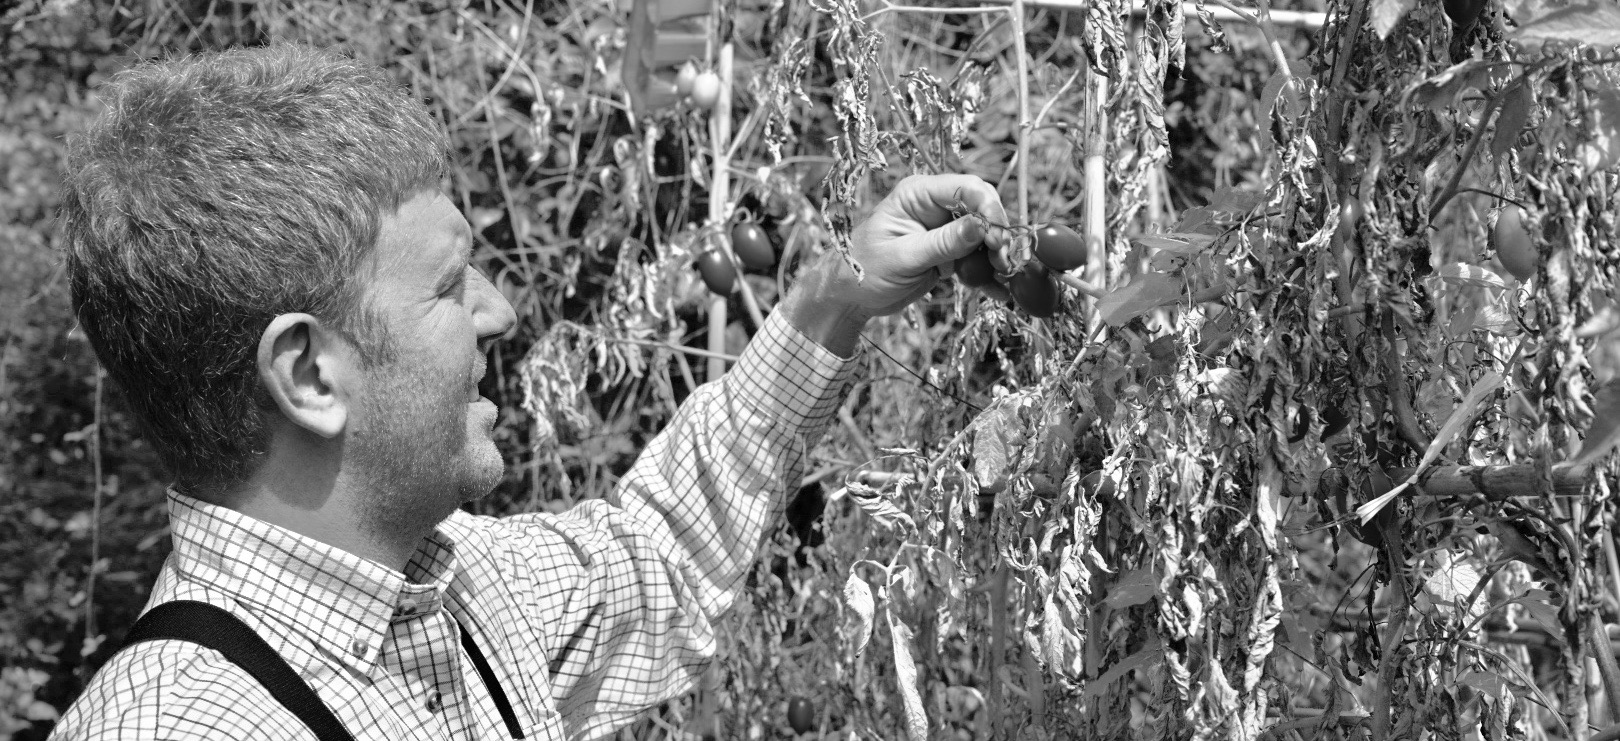 Harvesting tomatoes in the farm to make tomato sauce